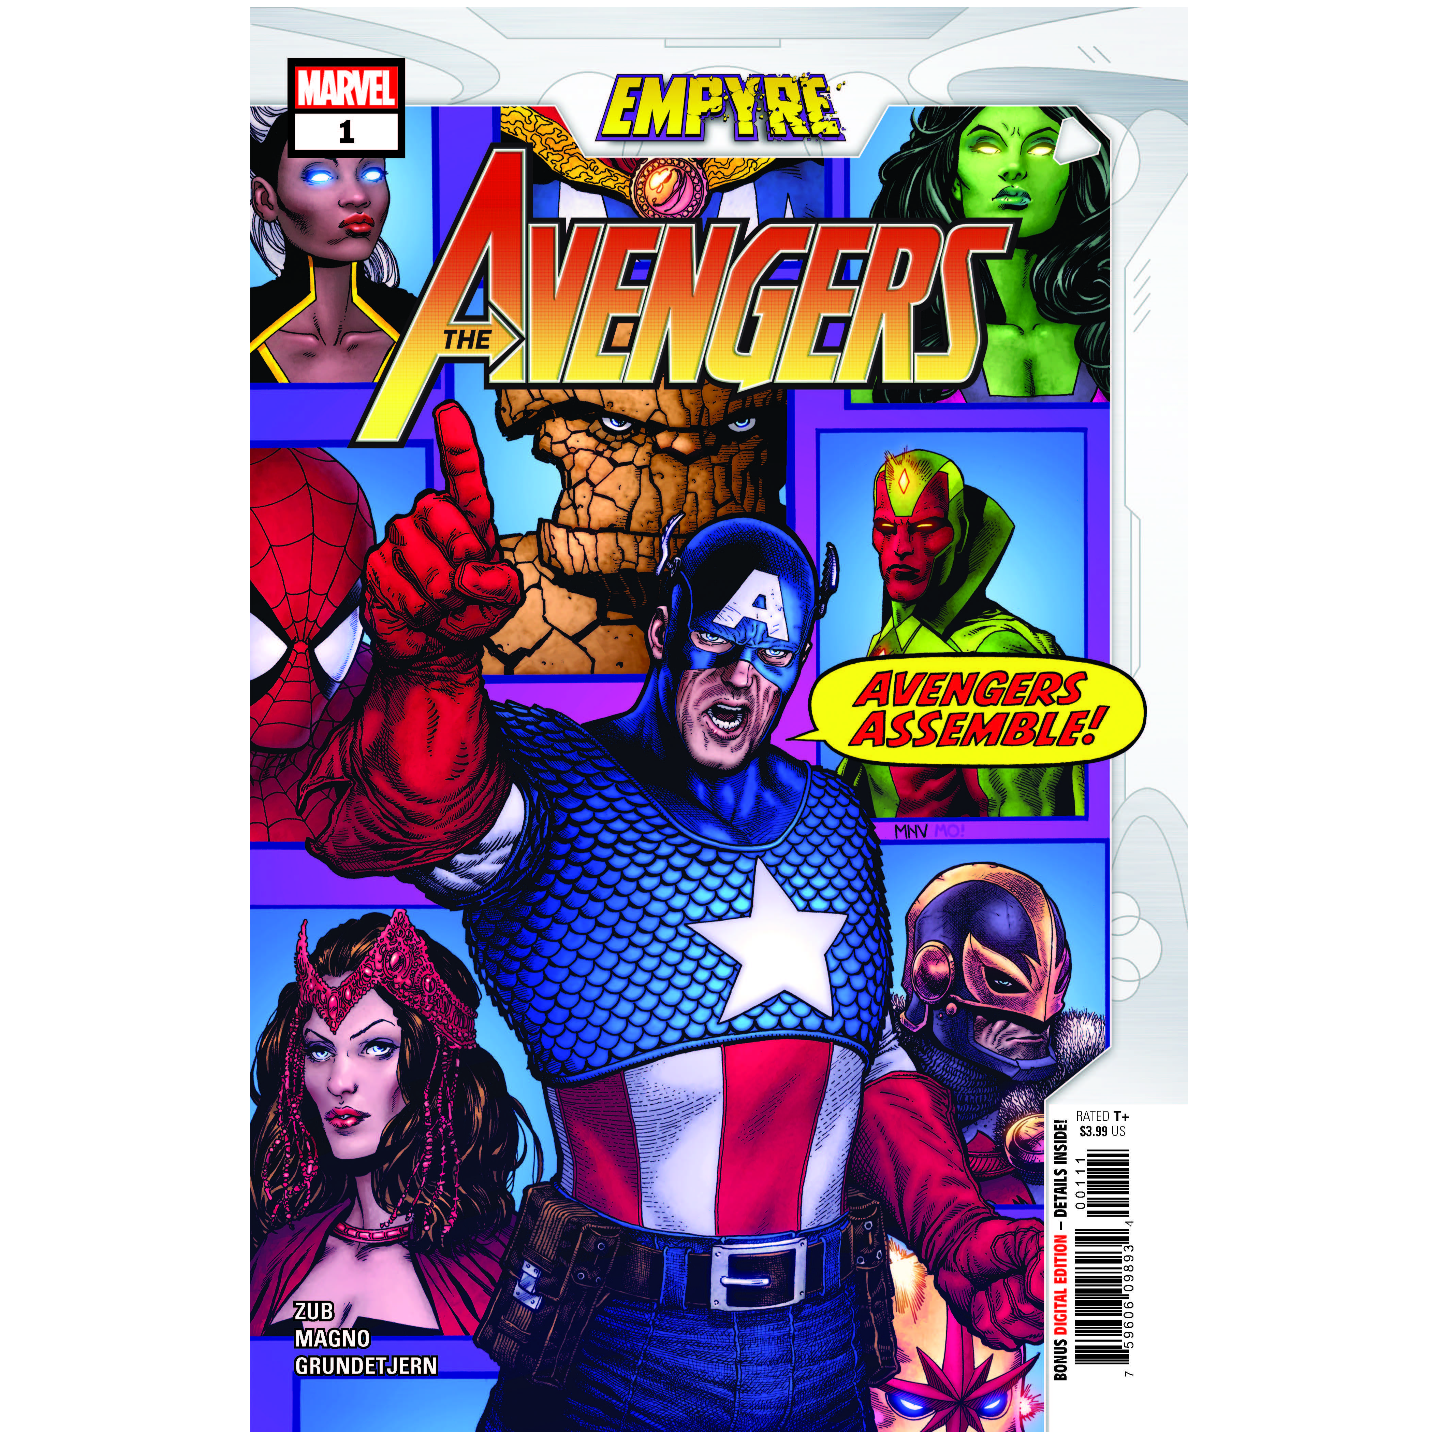 EMPYRE AVENGERS #1 (OF 3)